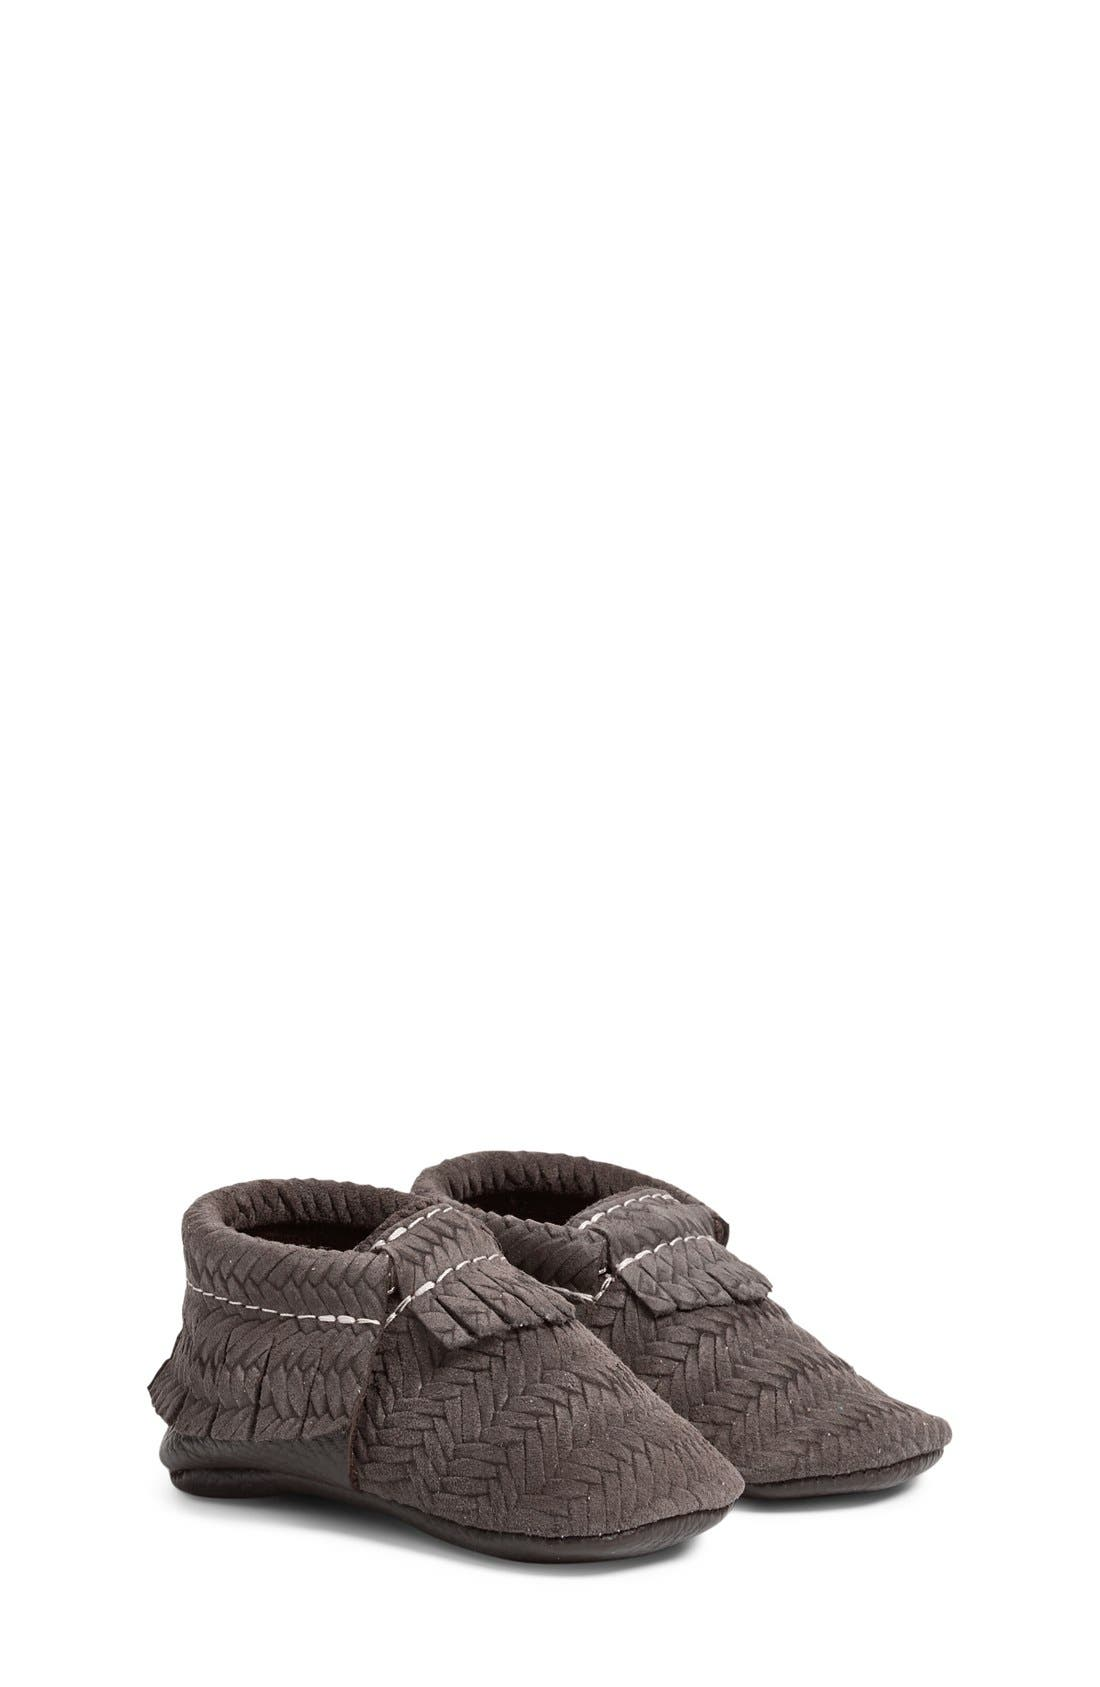 FRESHLY PICKED 'Sweater' Woven Leather Moccasin